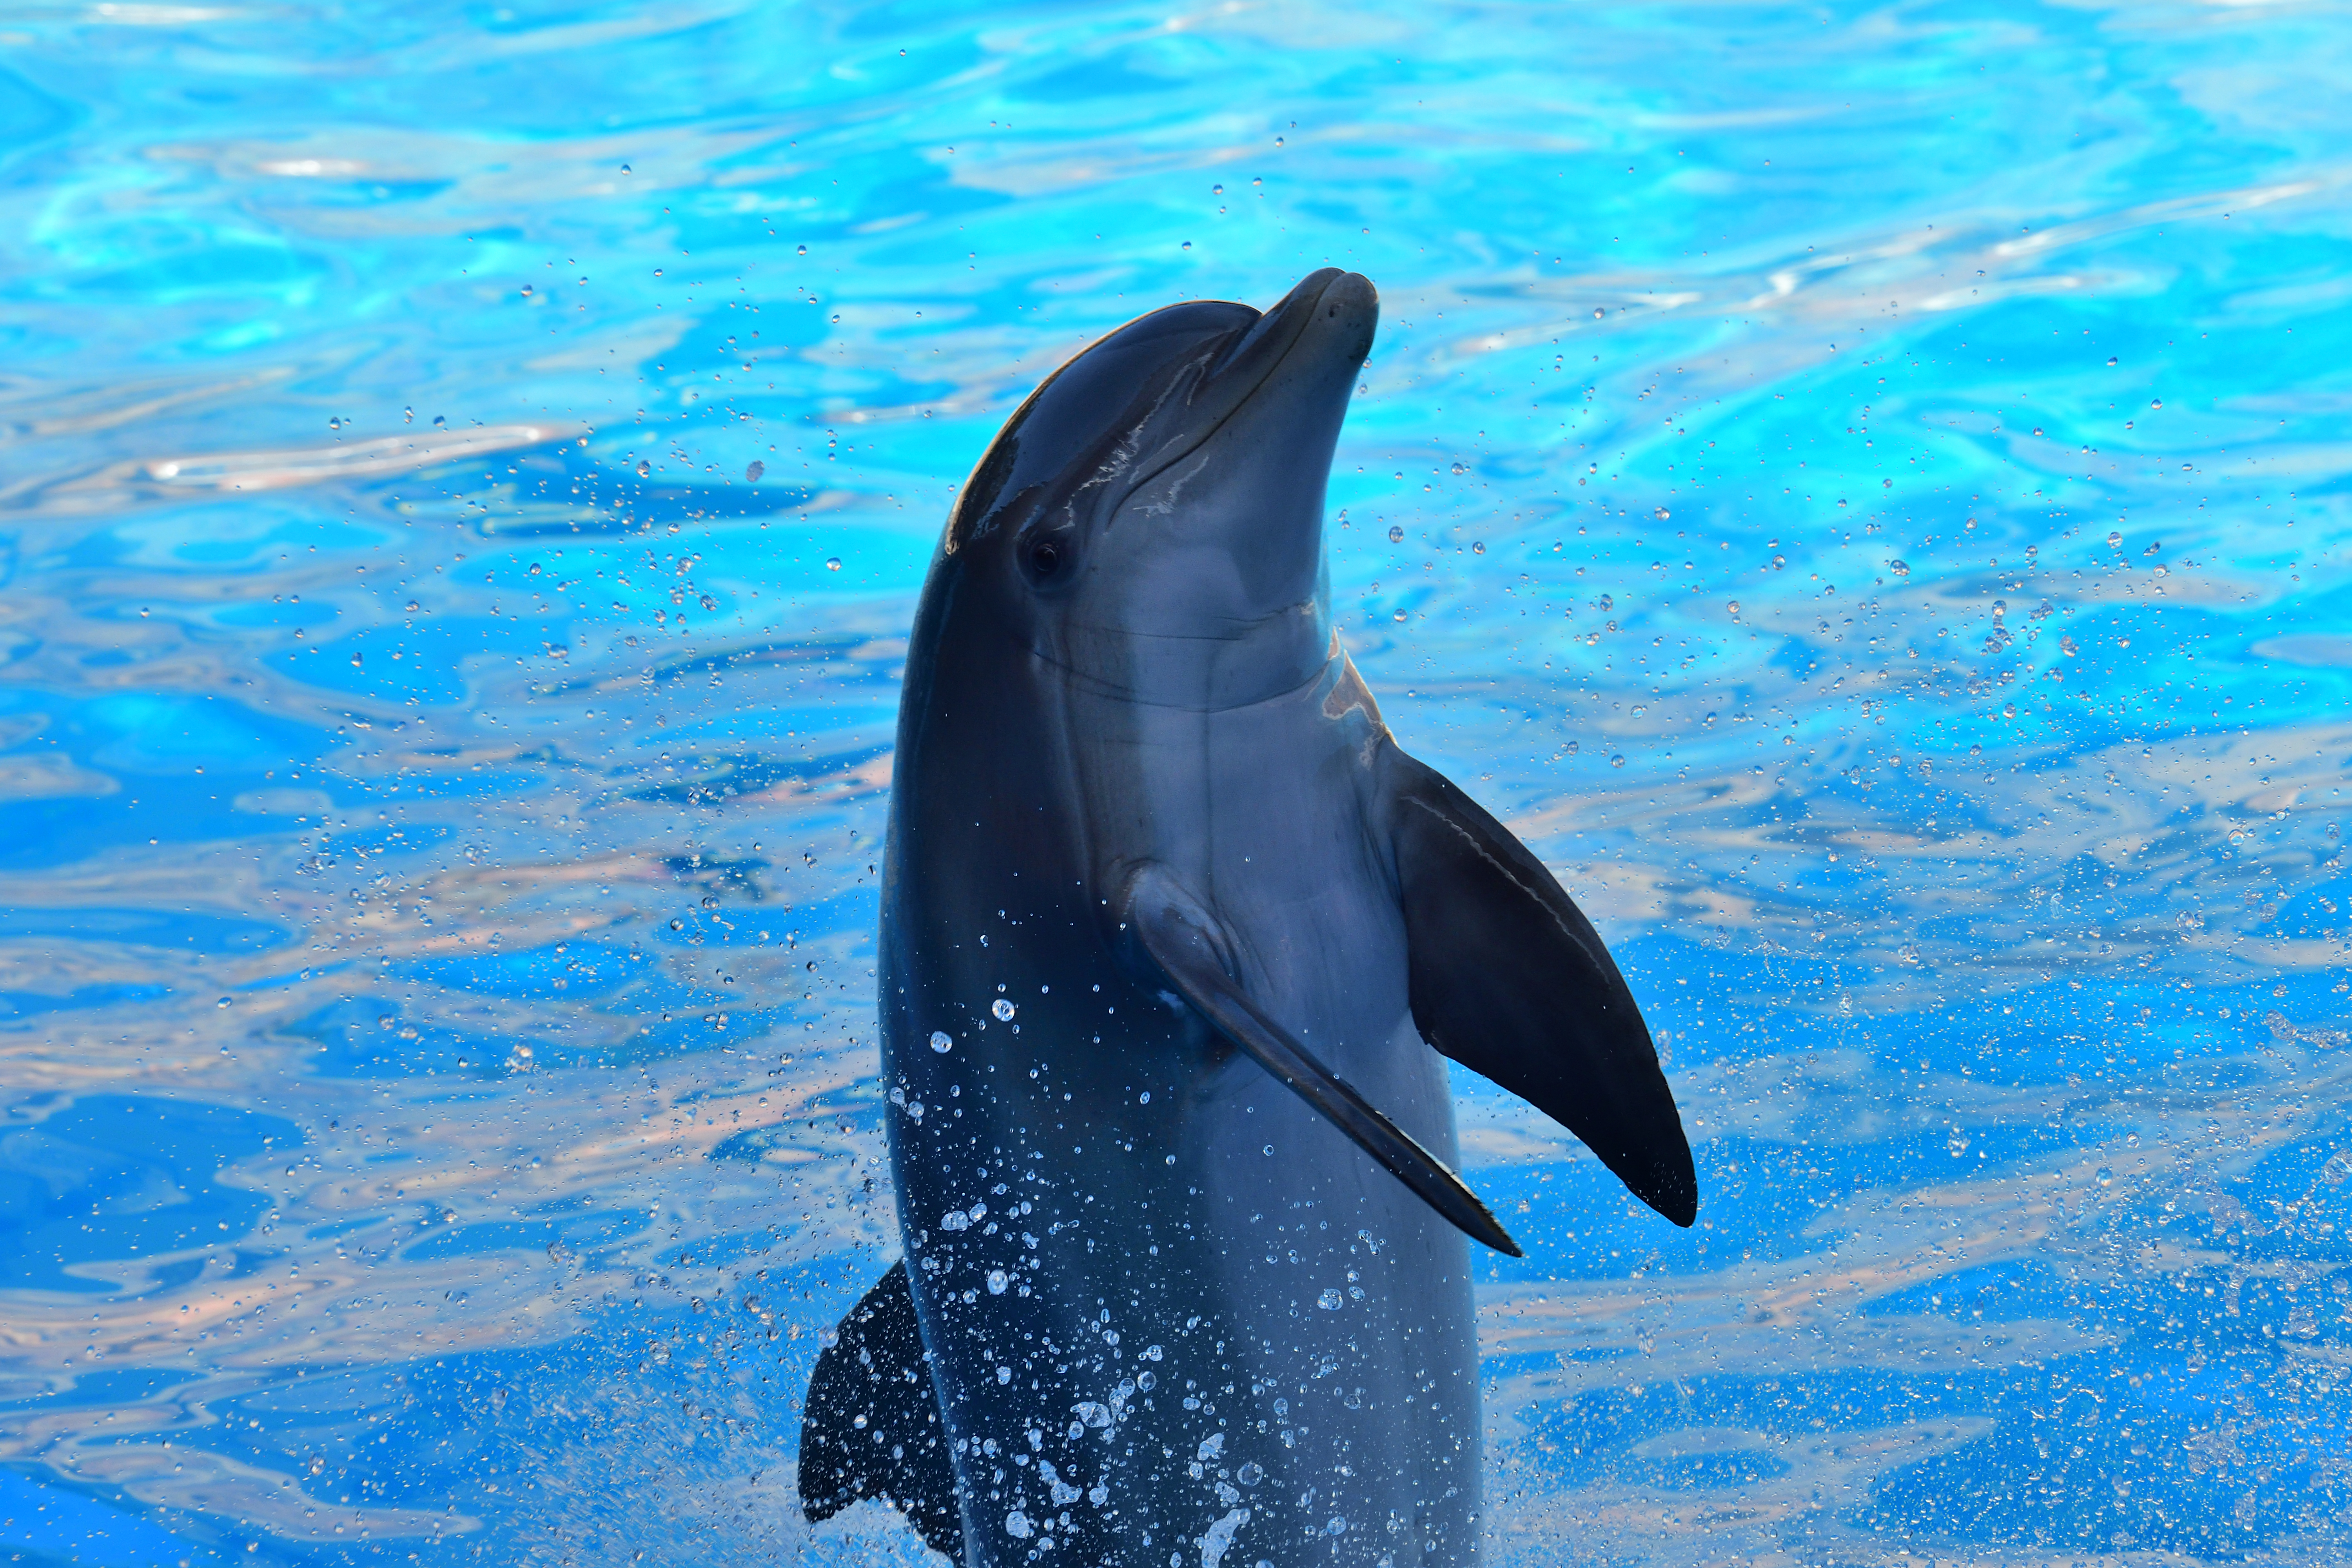 Captive dolphin performing